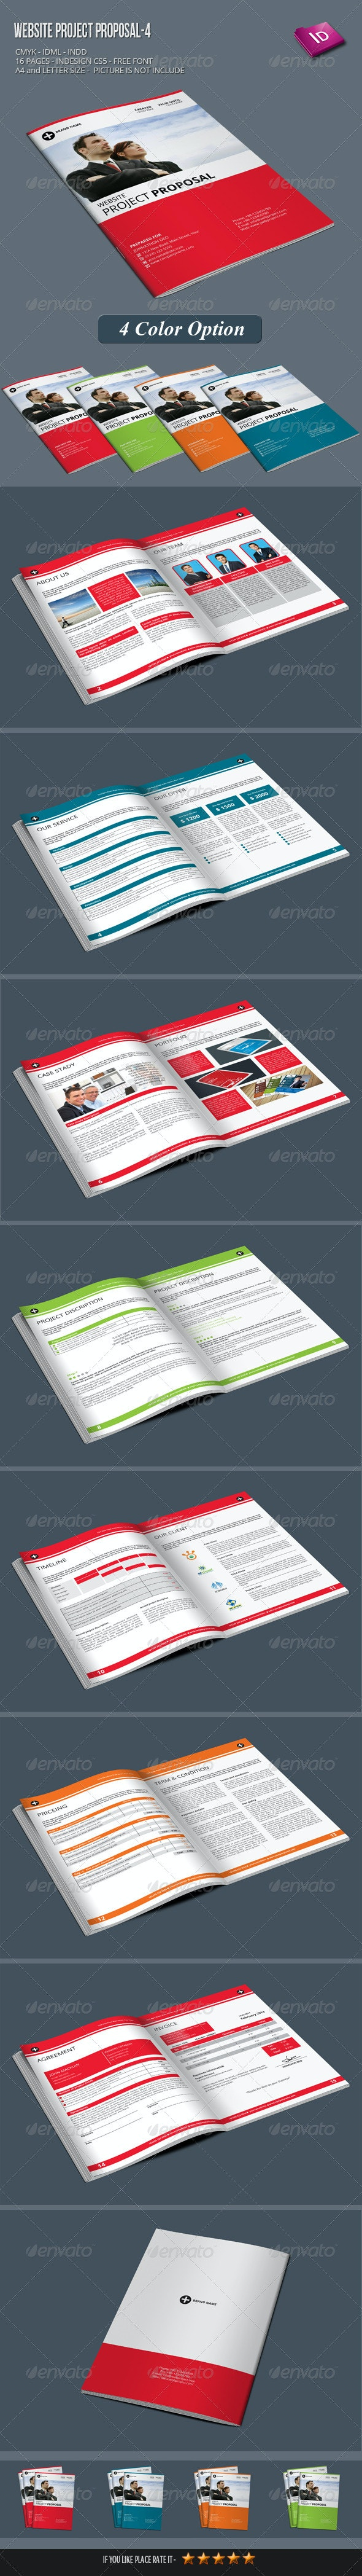 Website Project Proposal-4 - Proposals & Invoices Stationery